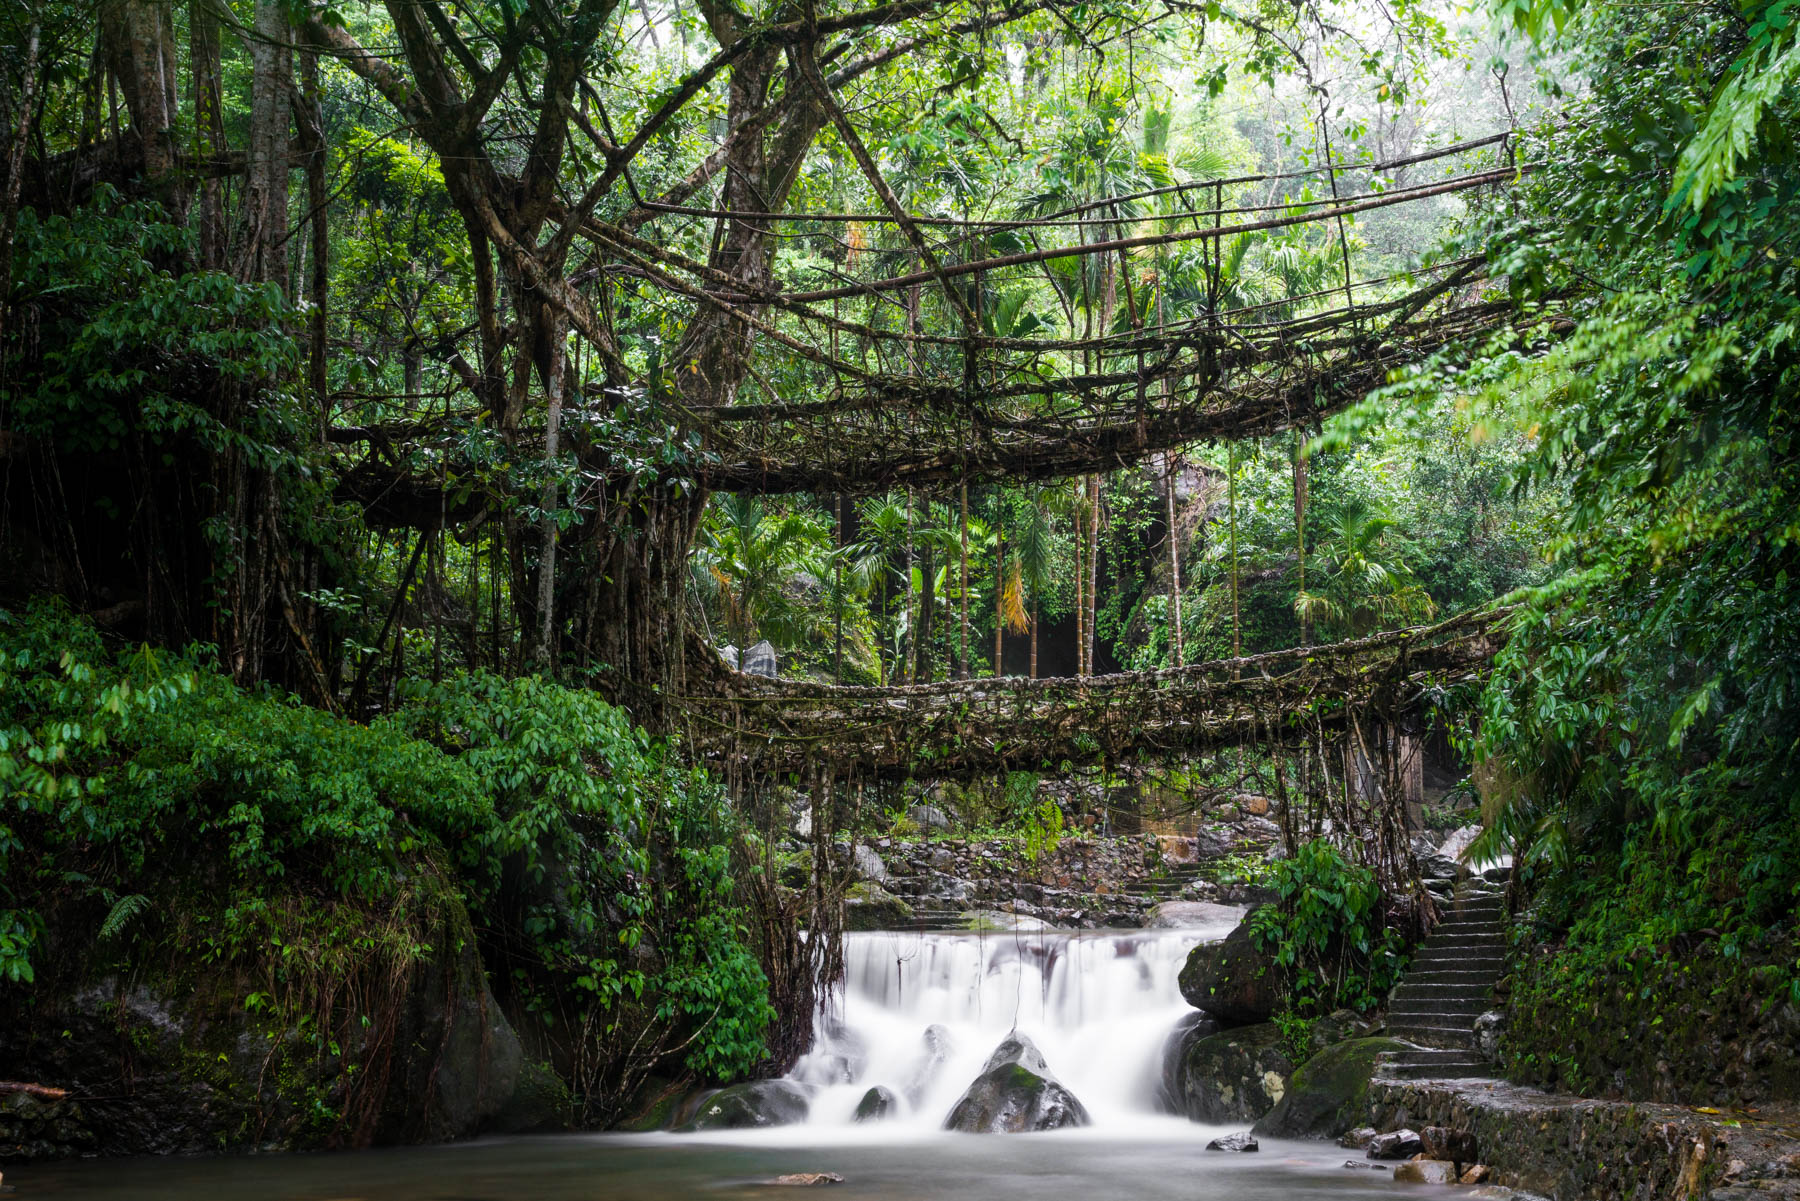 Photo essay of Nongriat and the living root bridges of Meghalaya, India - A long exposure of the waterfall below Umshiang living root bridge - Lost With Purpose